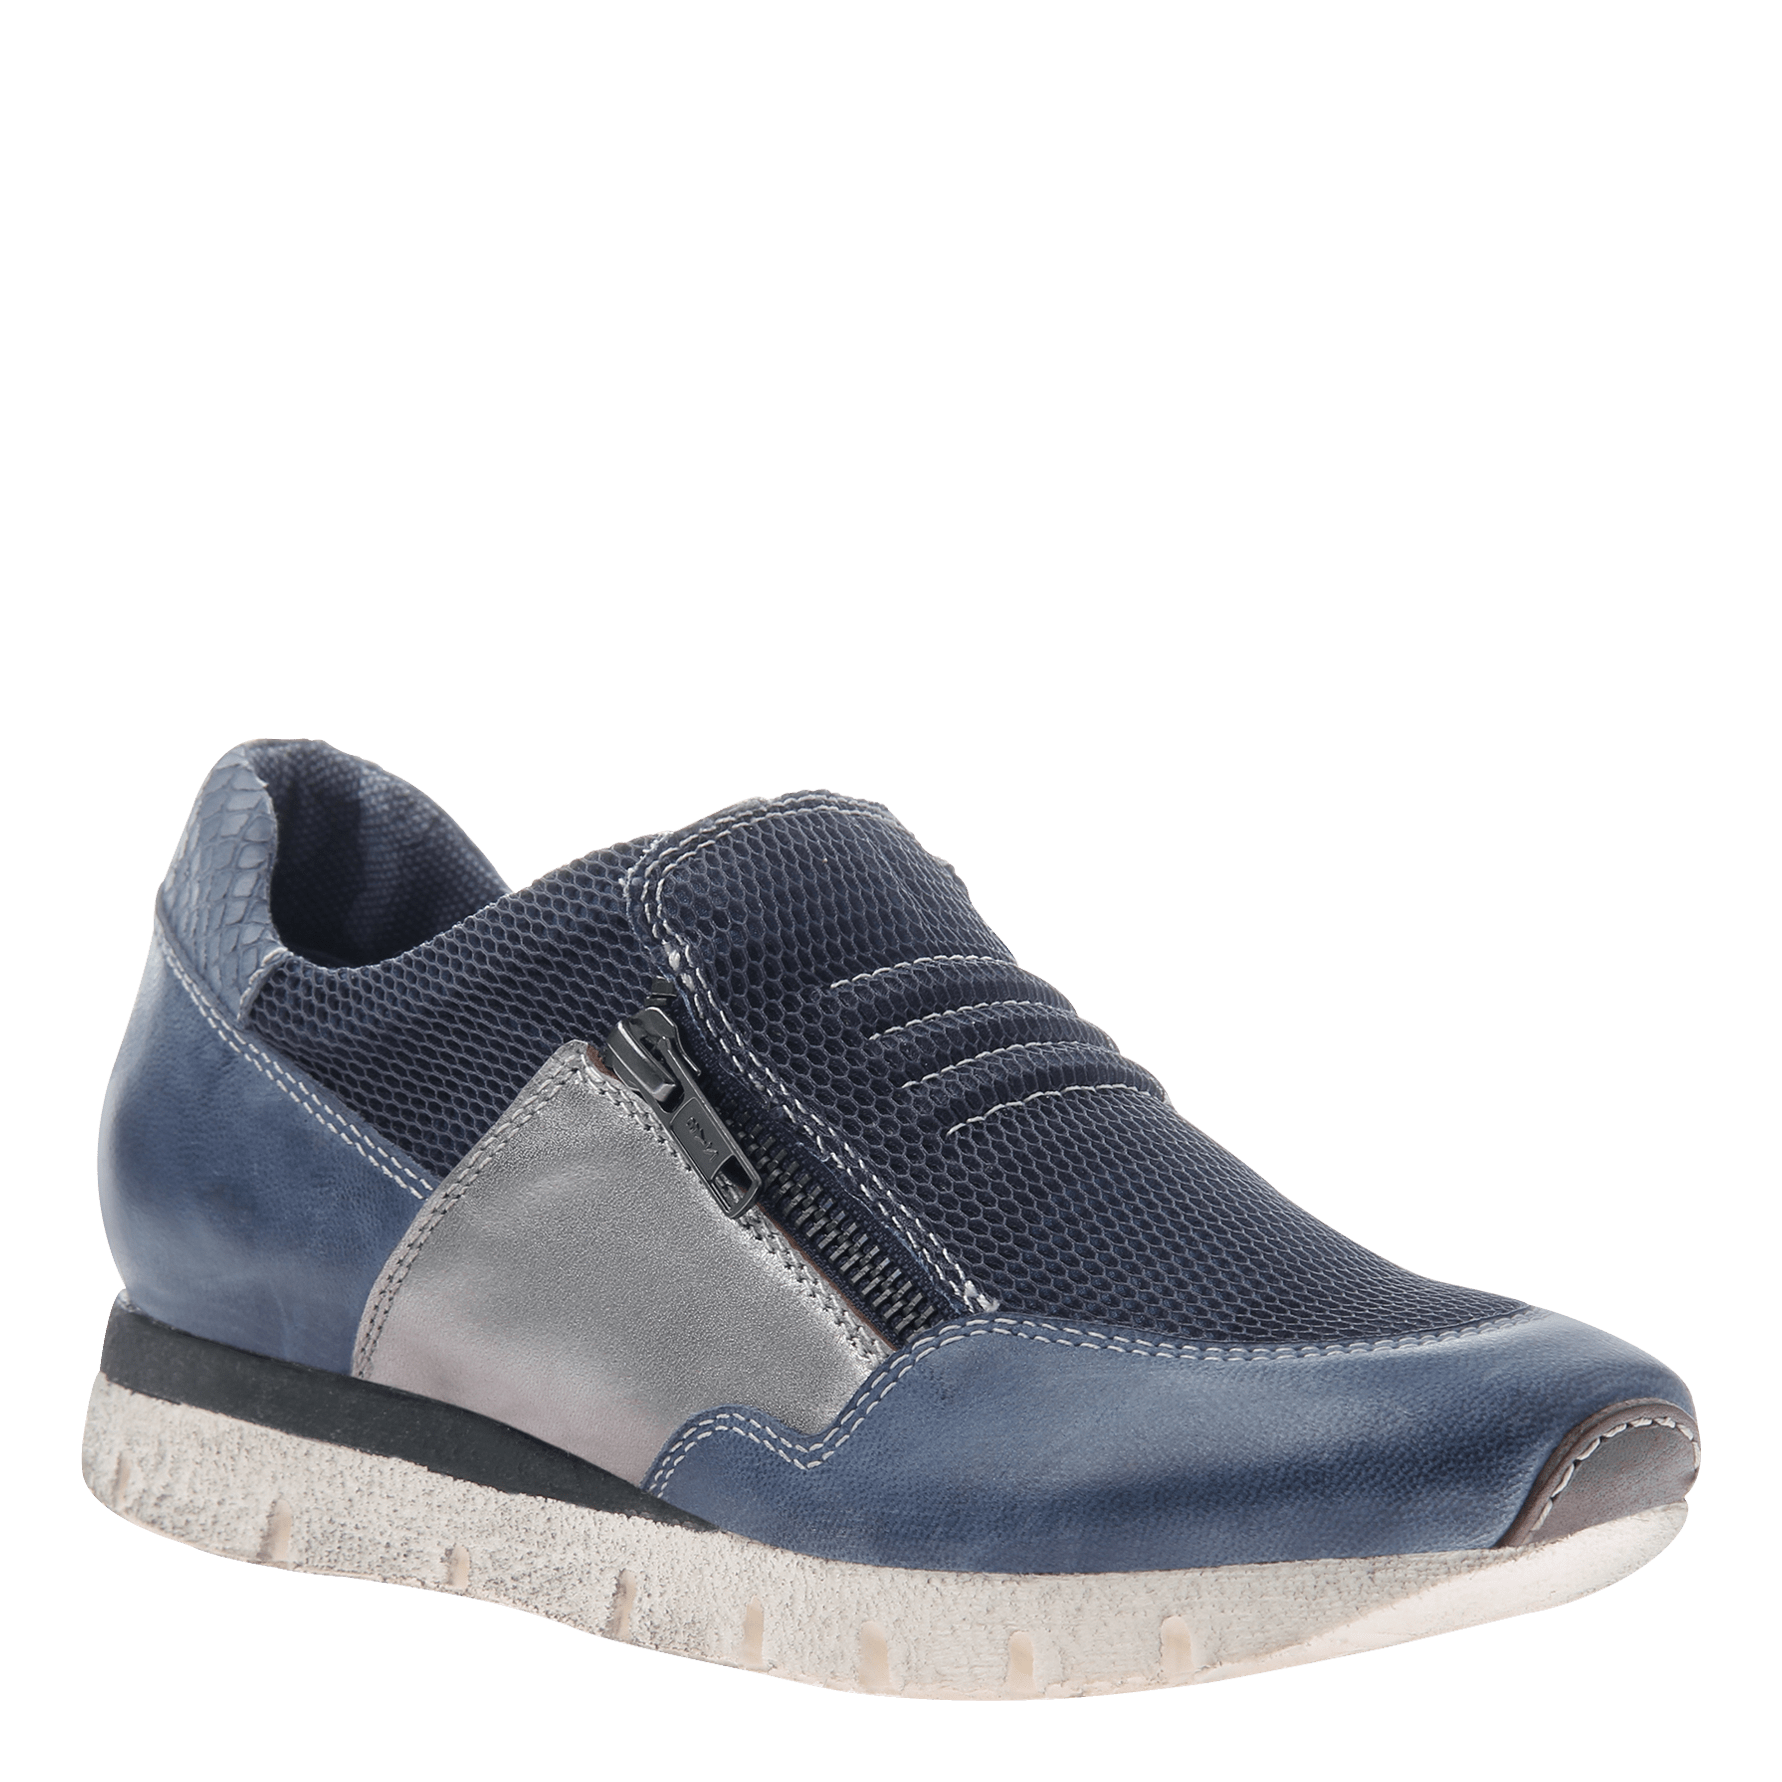 Sewell women's double zip up sneaker in blue